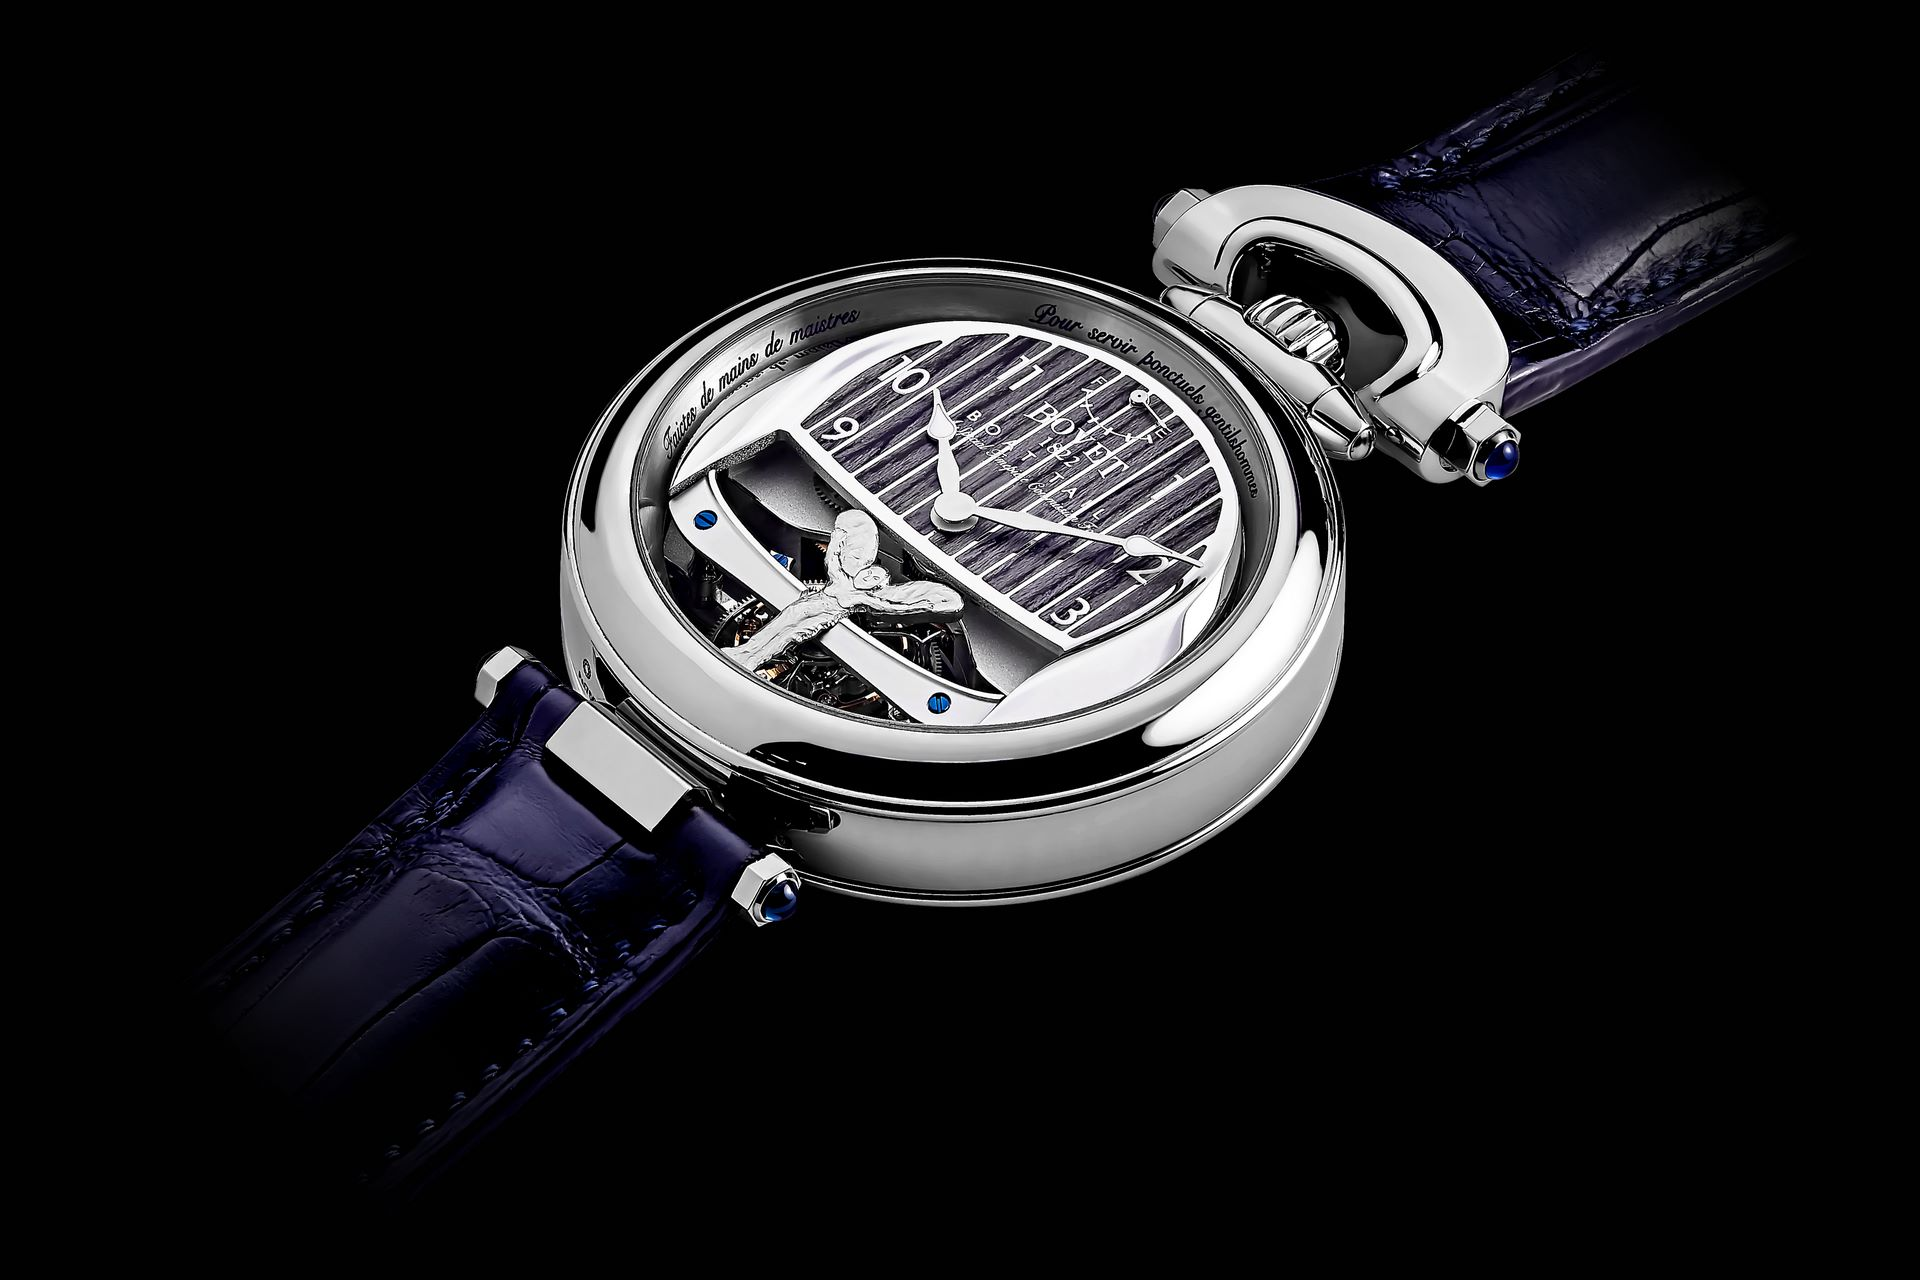 Rolls-Royce-Boat-Tail-Bovet-1822-Watches-1